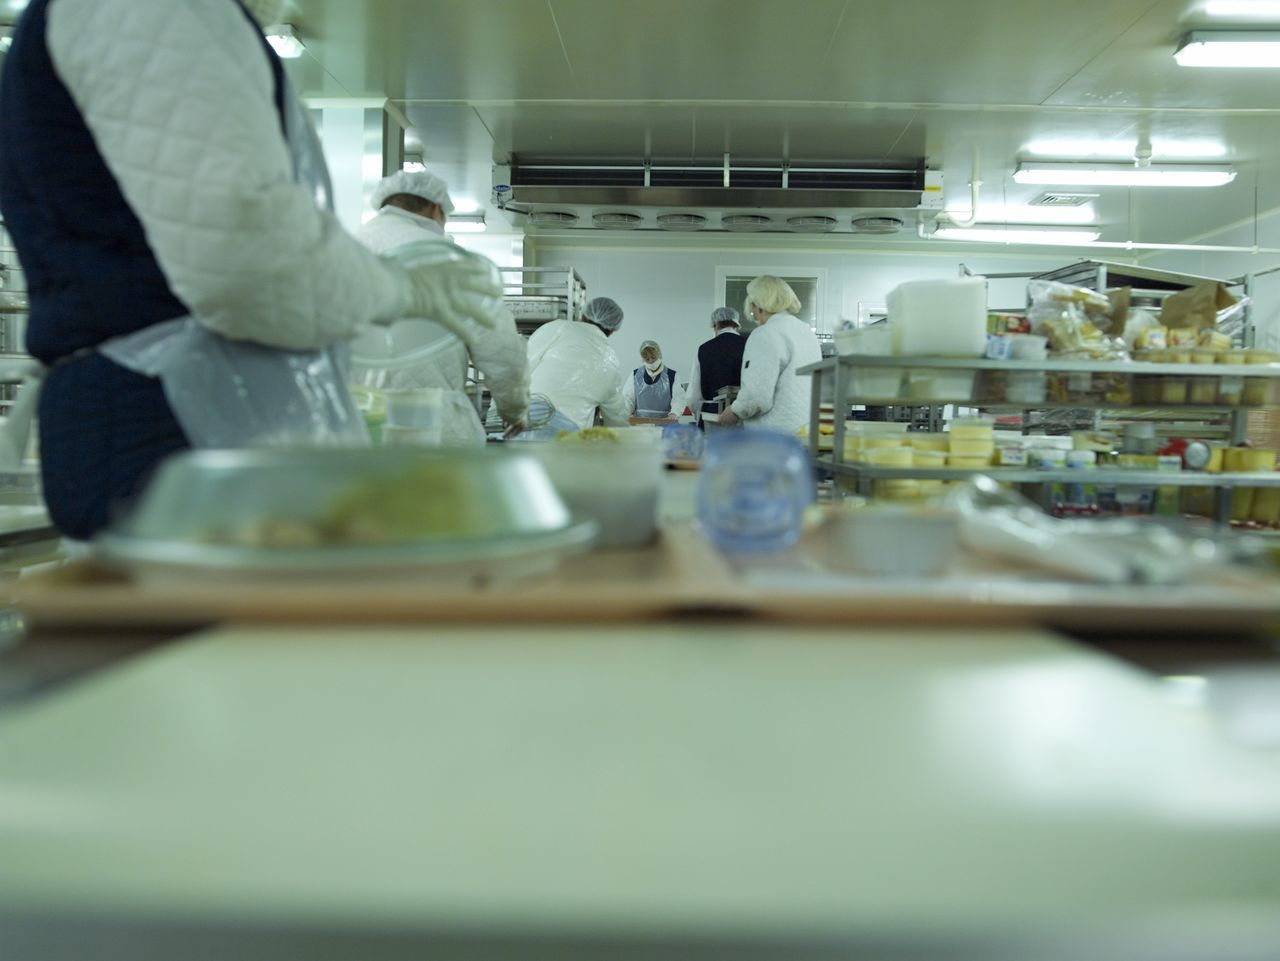 Food Food And Drink Indoors  Preparation  hospital kitchen Hospital Belgium Focus On Background Depth Of Field Preparation  Kitchen Professional Industrial Meal Trays